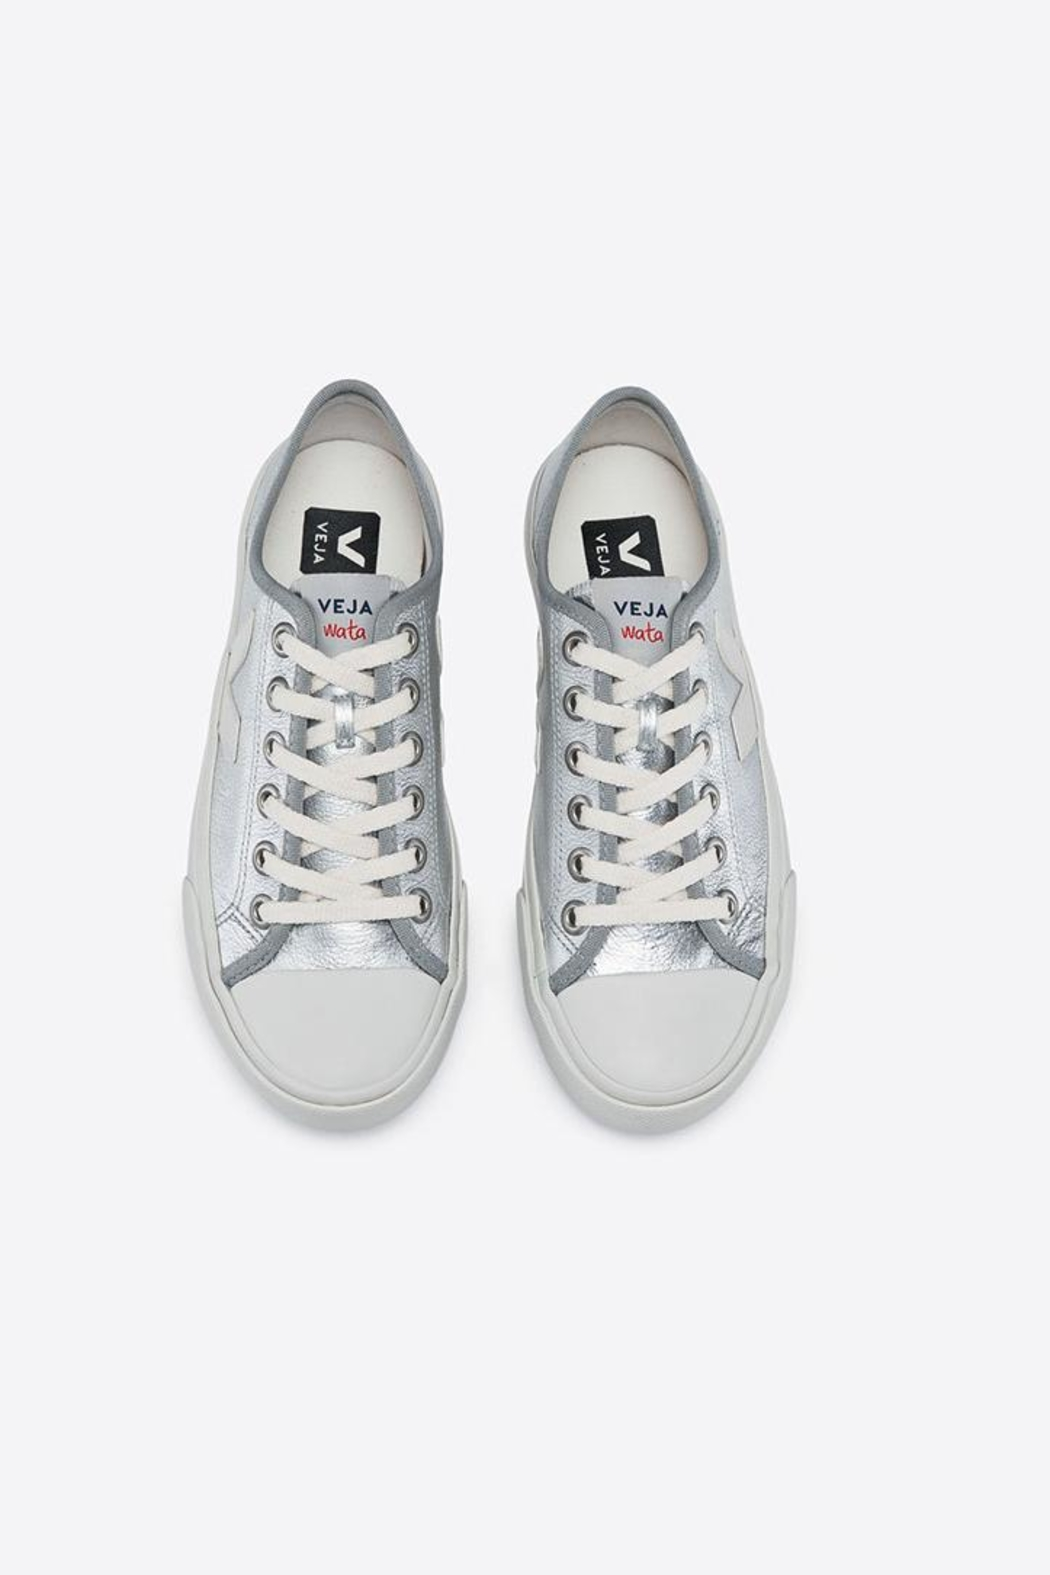 Veja Wata Leather Silver Shoes from